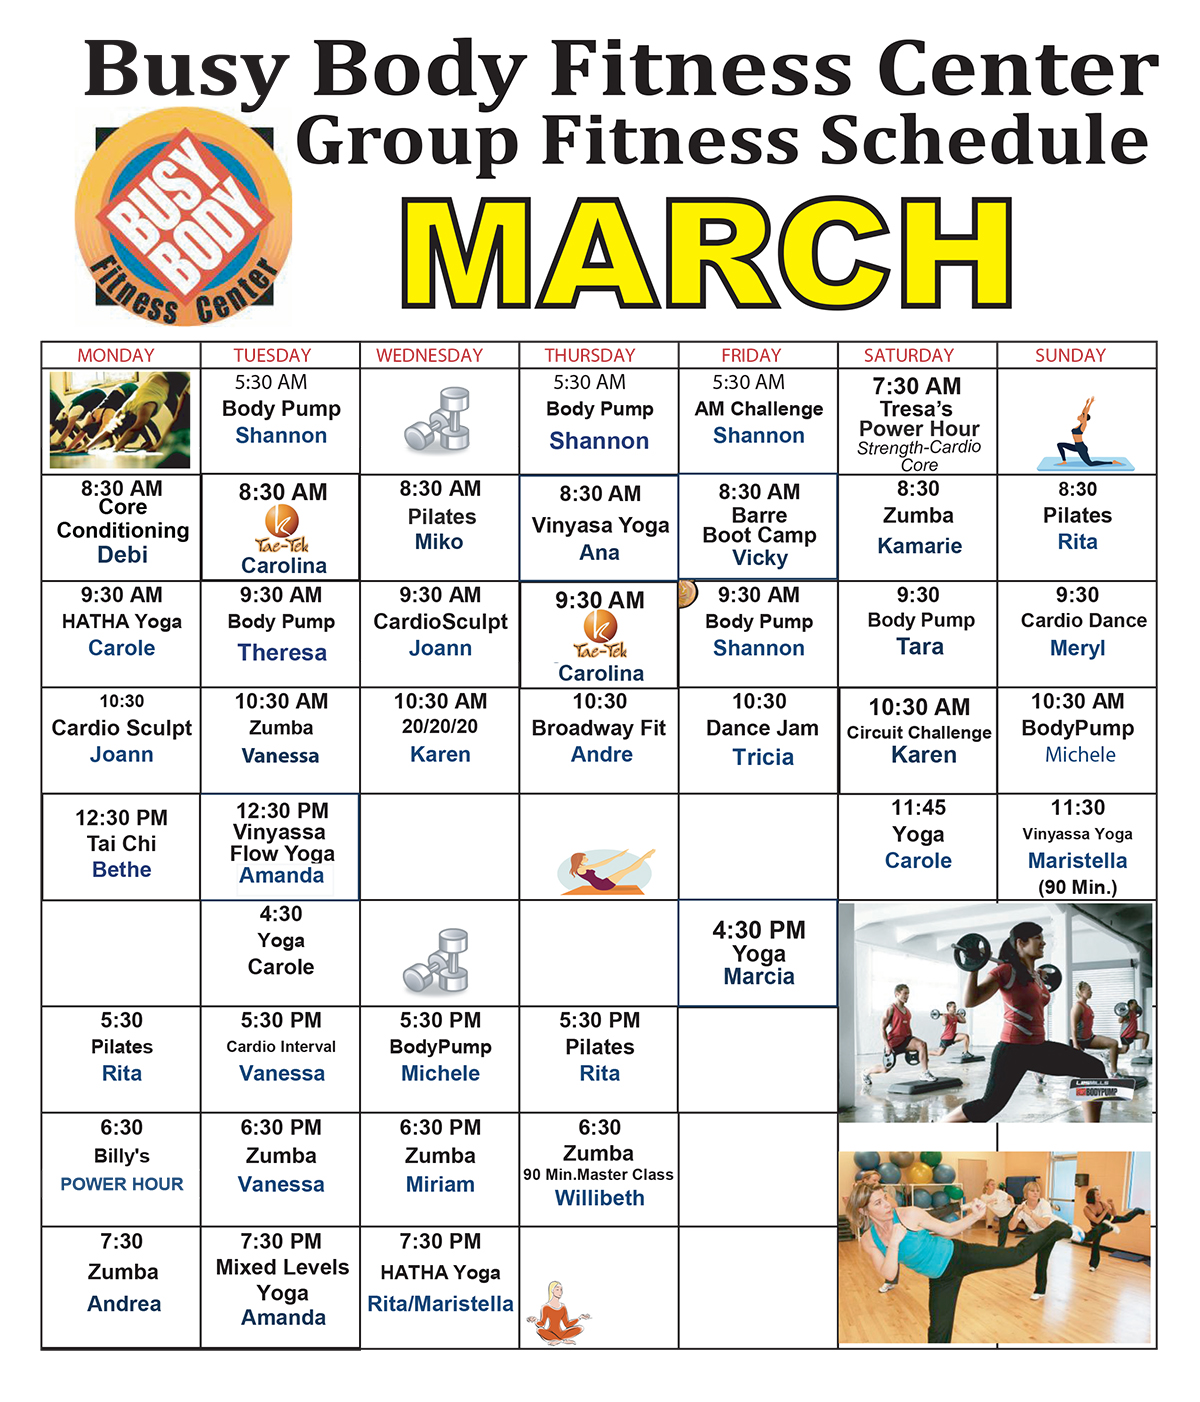 Busy Body Fitness Center West Boca Raton Group Fitness Class Schedule for March 2018